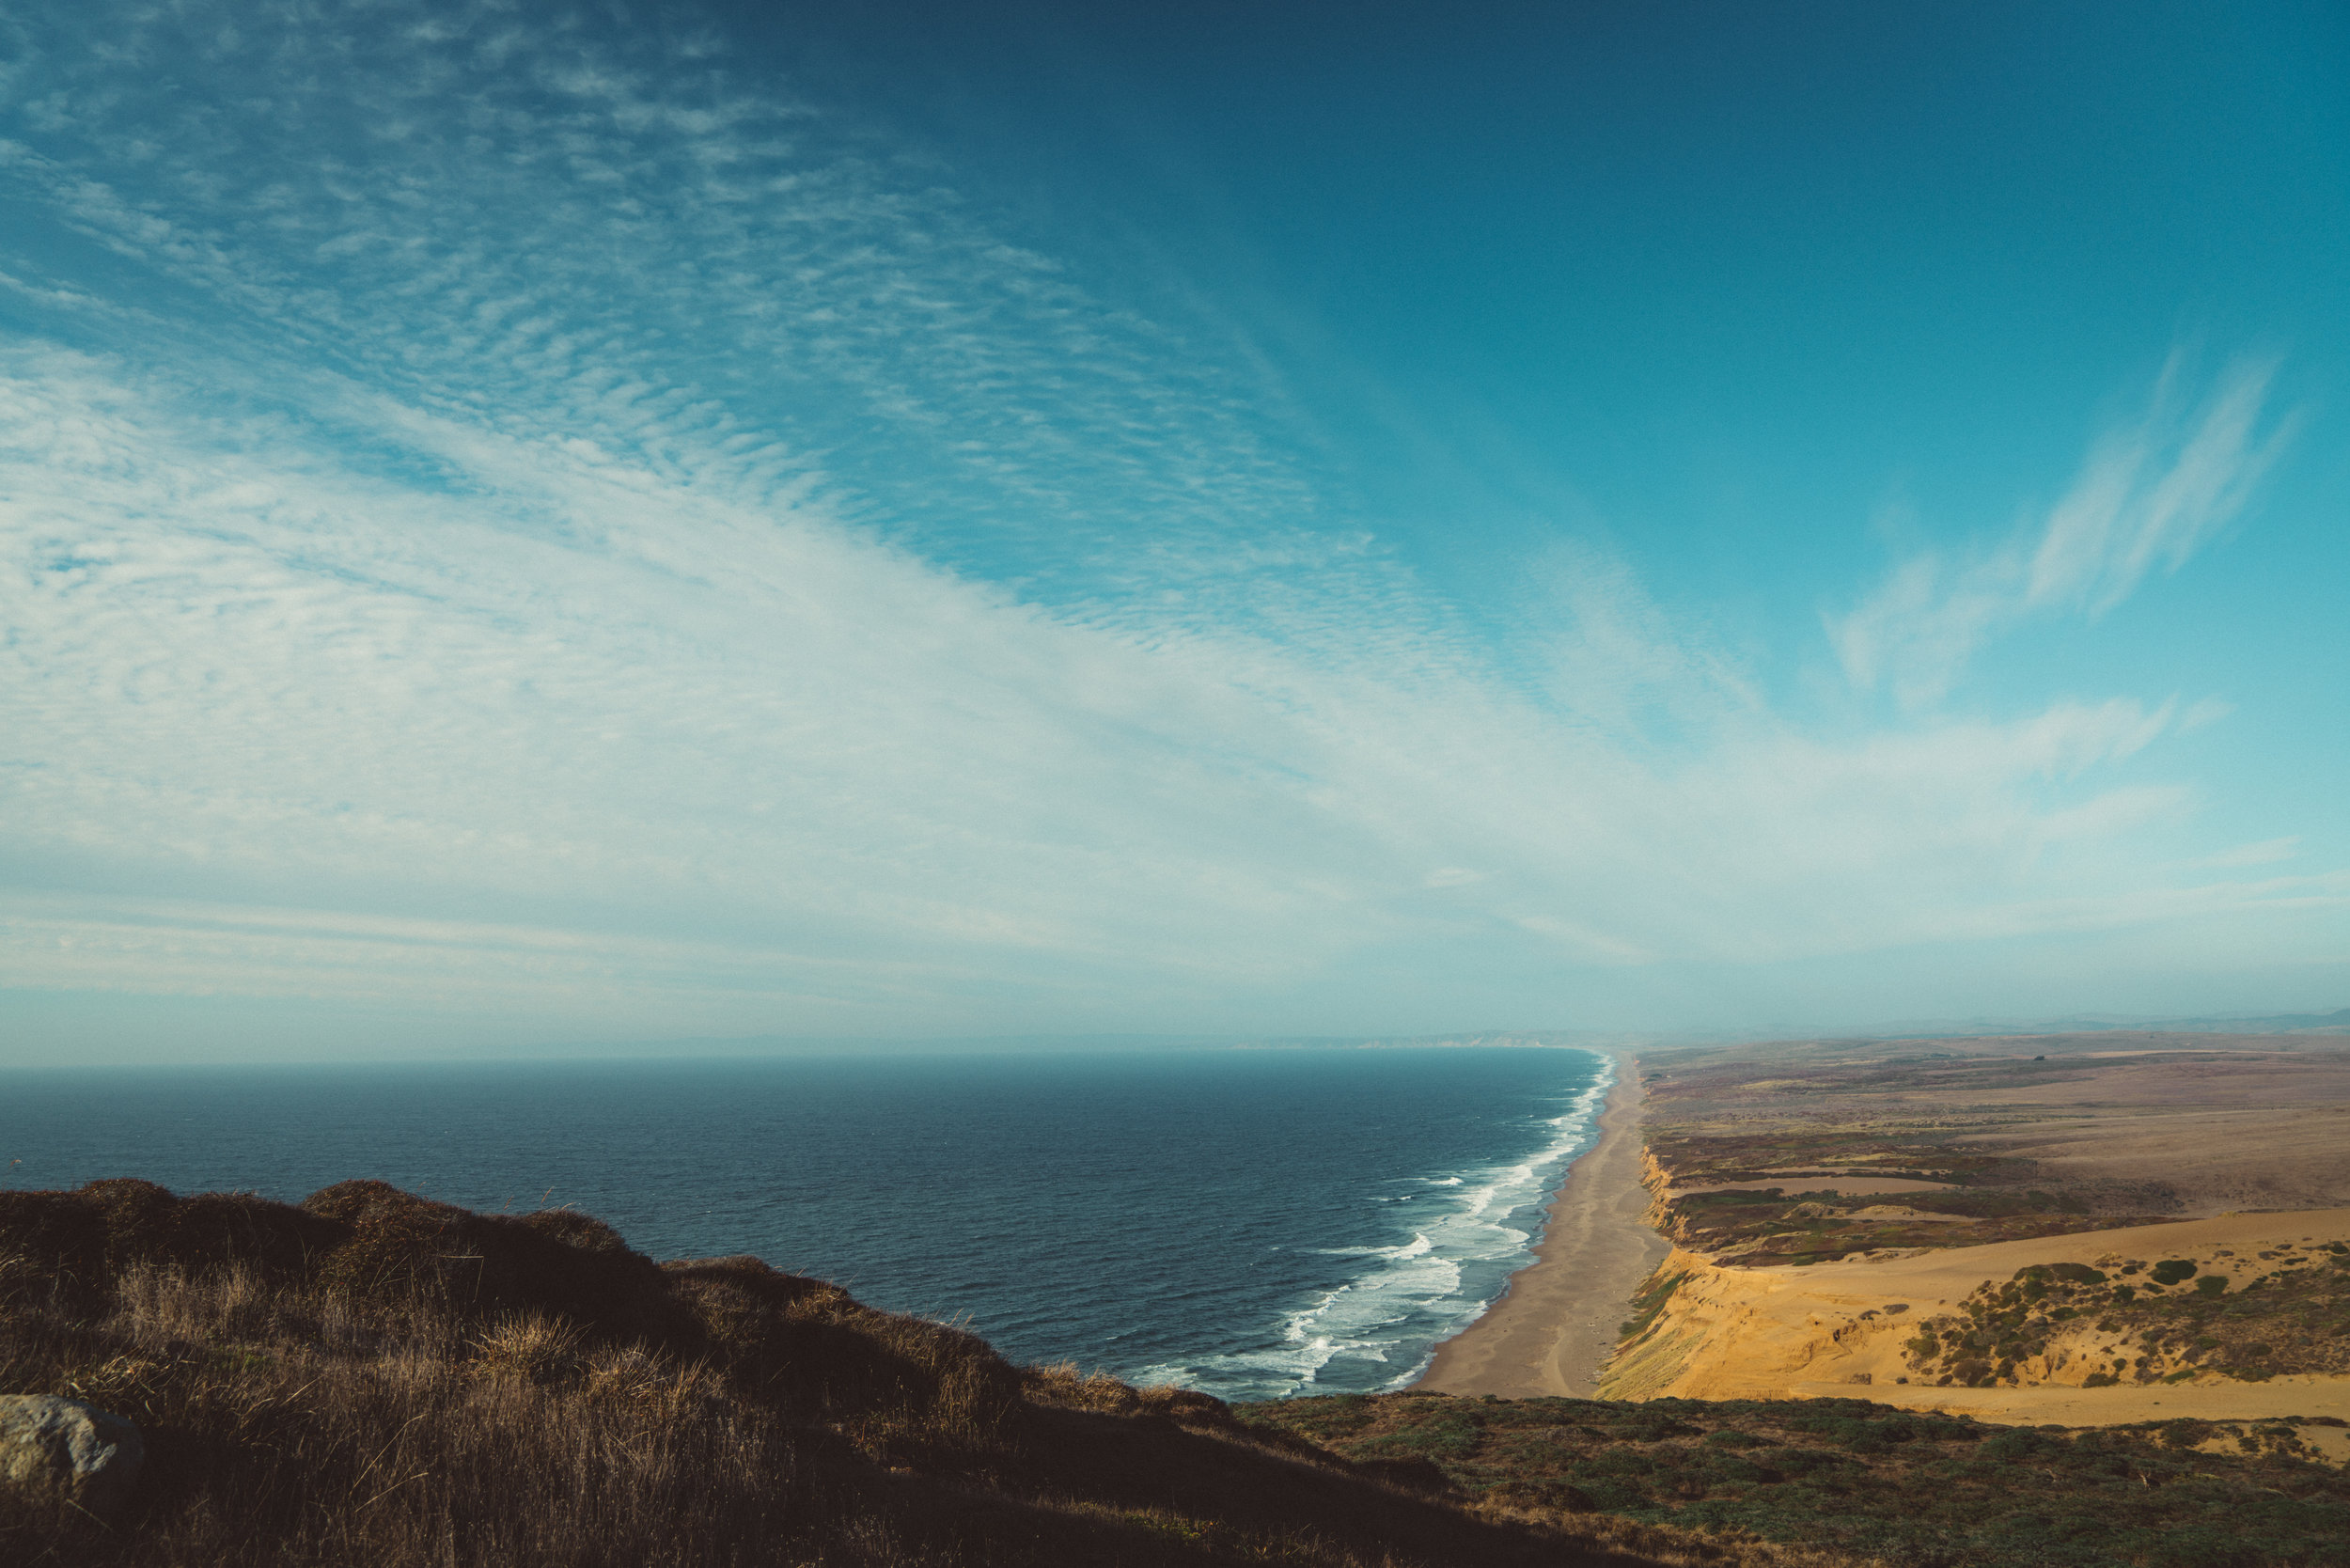 Point Reyes and its seemingly never-ending beach.